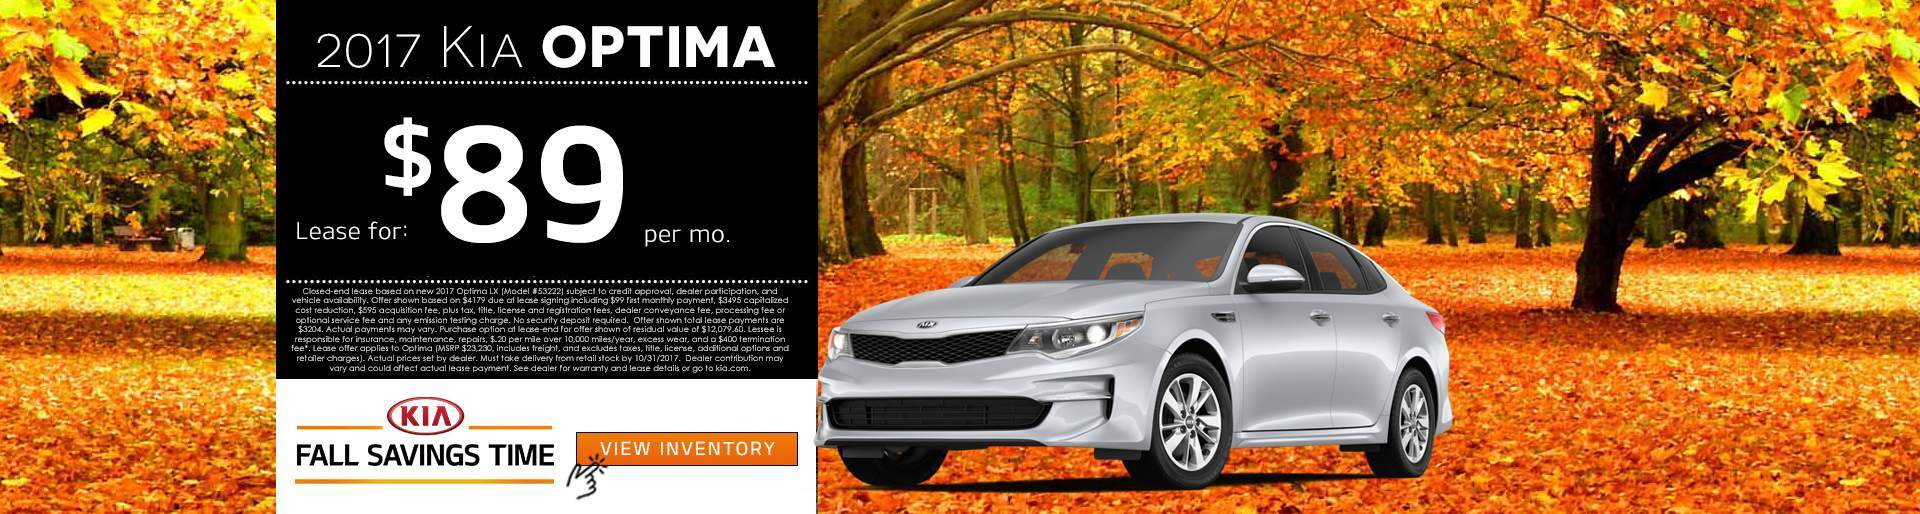 2017 Kia Optima Lease Offer